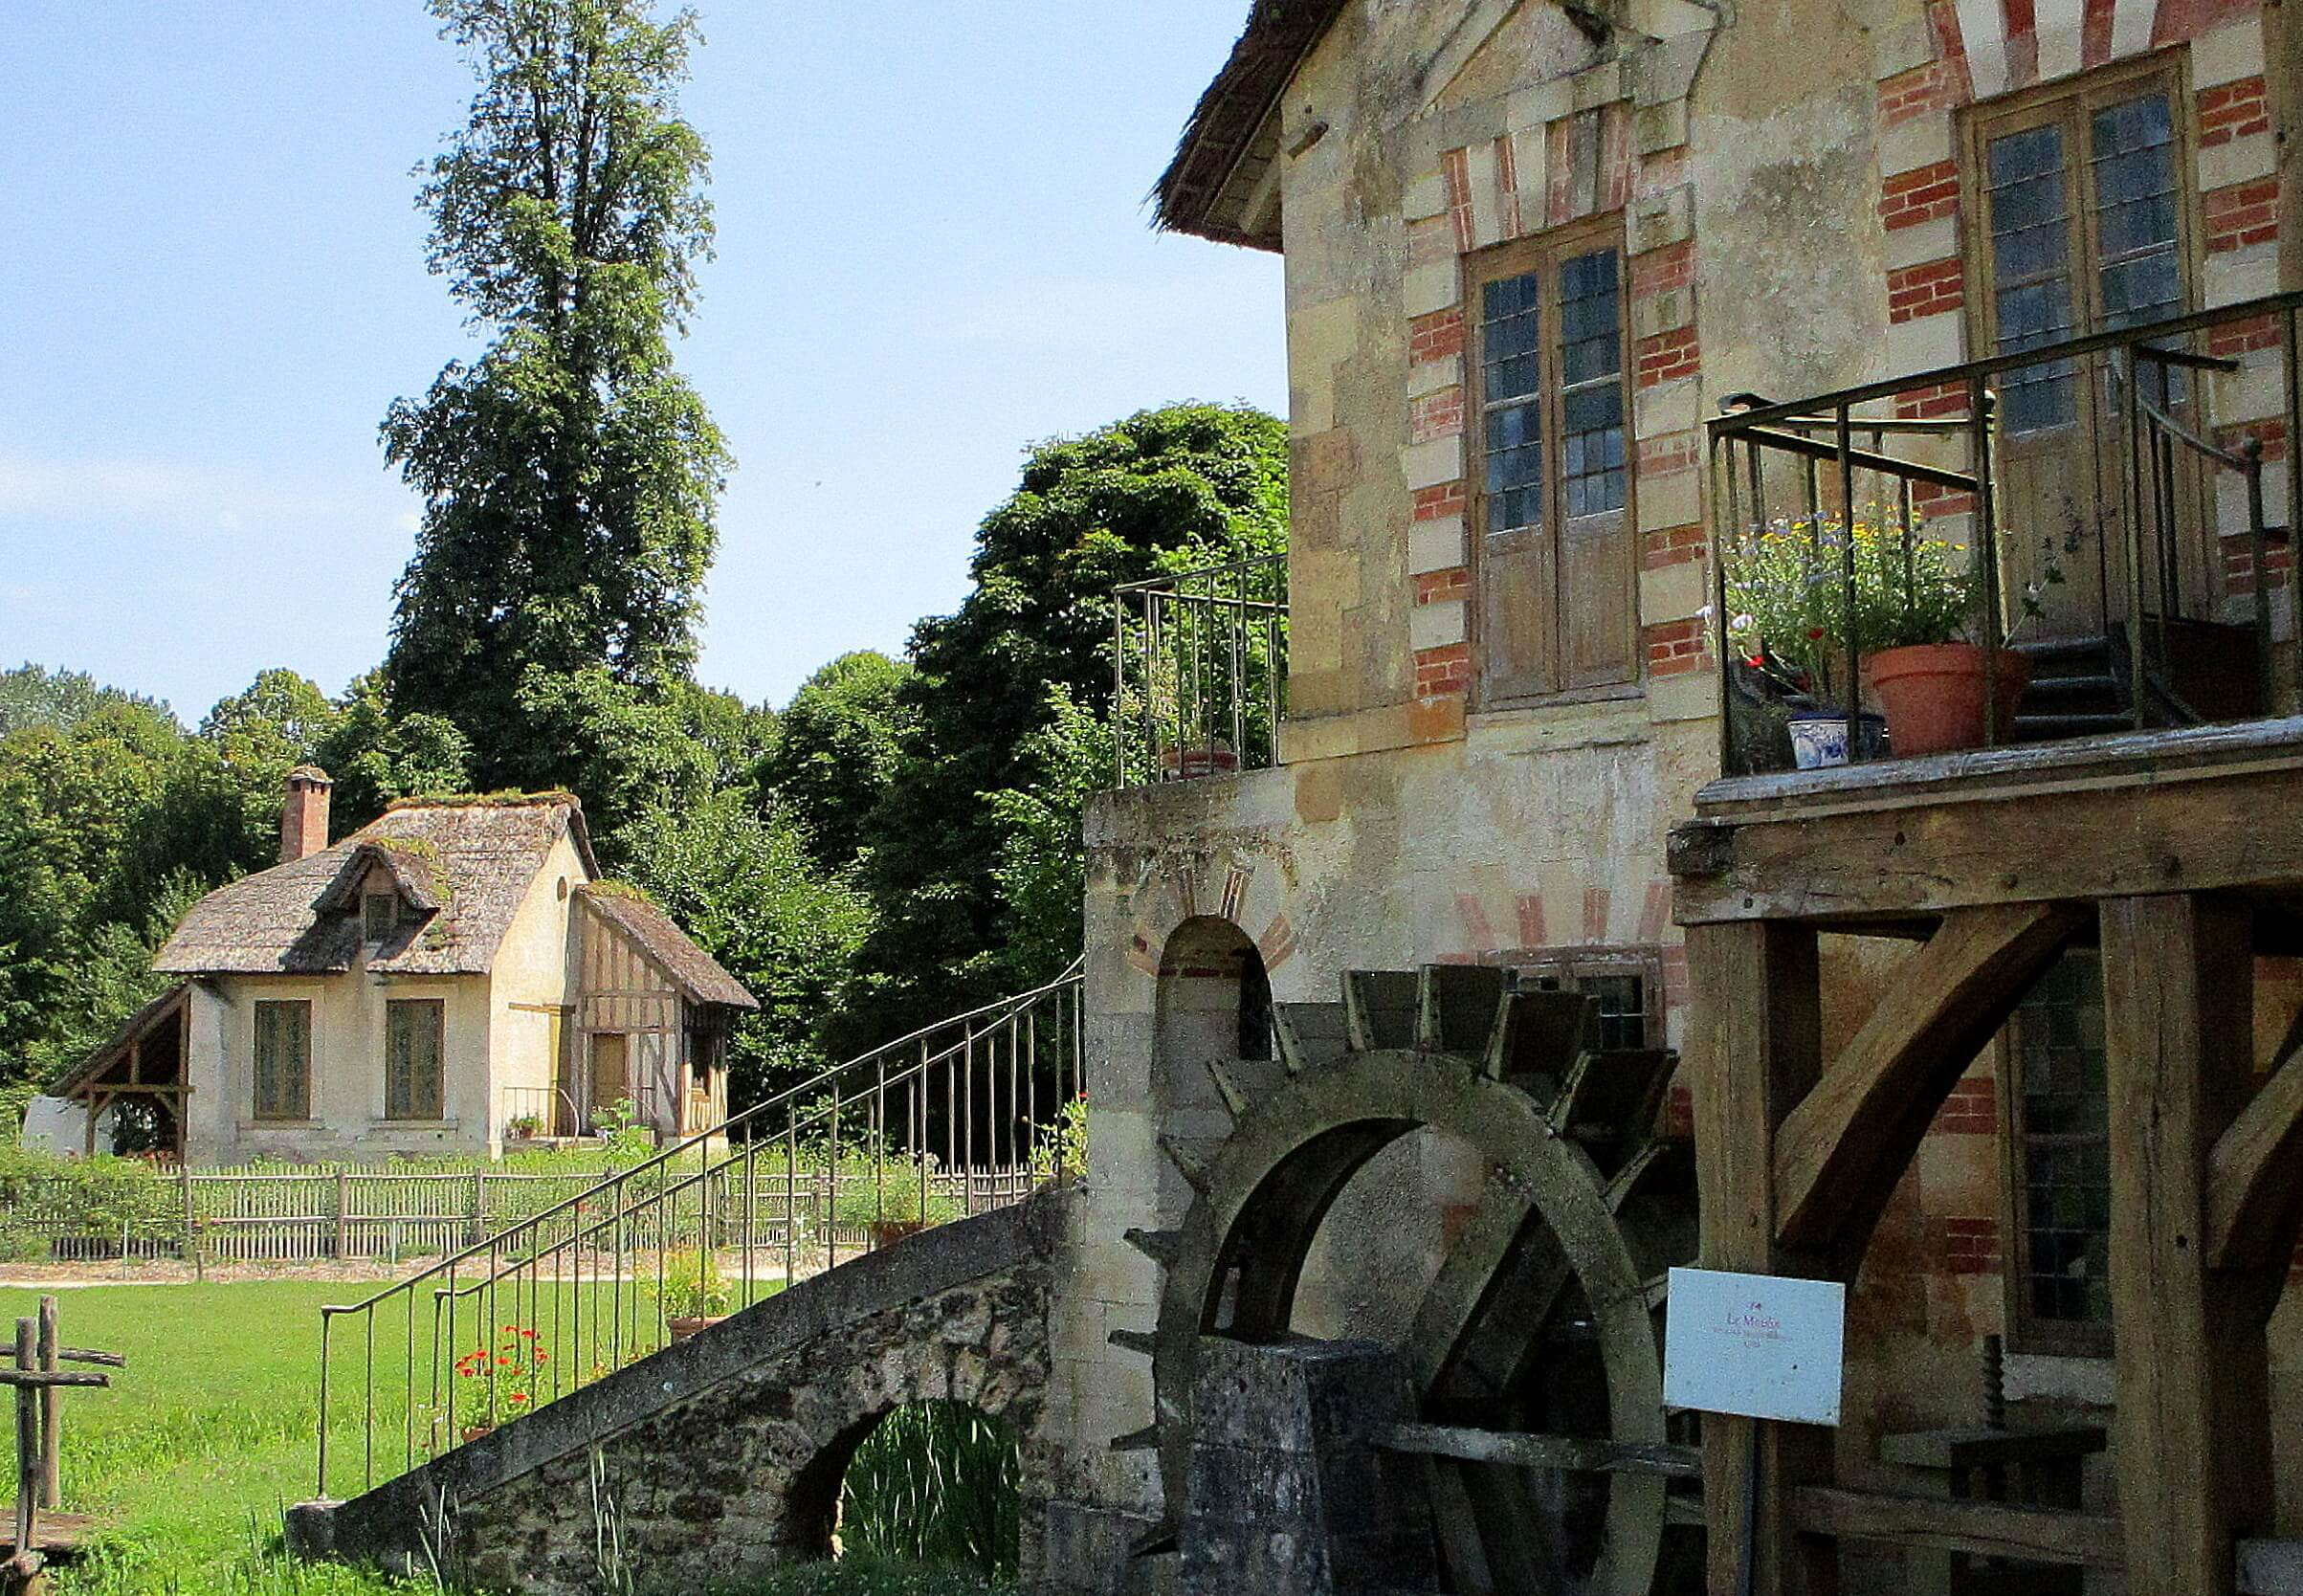 The Queen's hamlet, watermill on Marie Antoinette's Estate